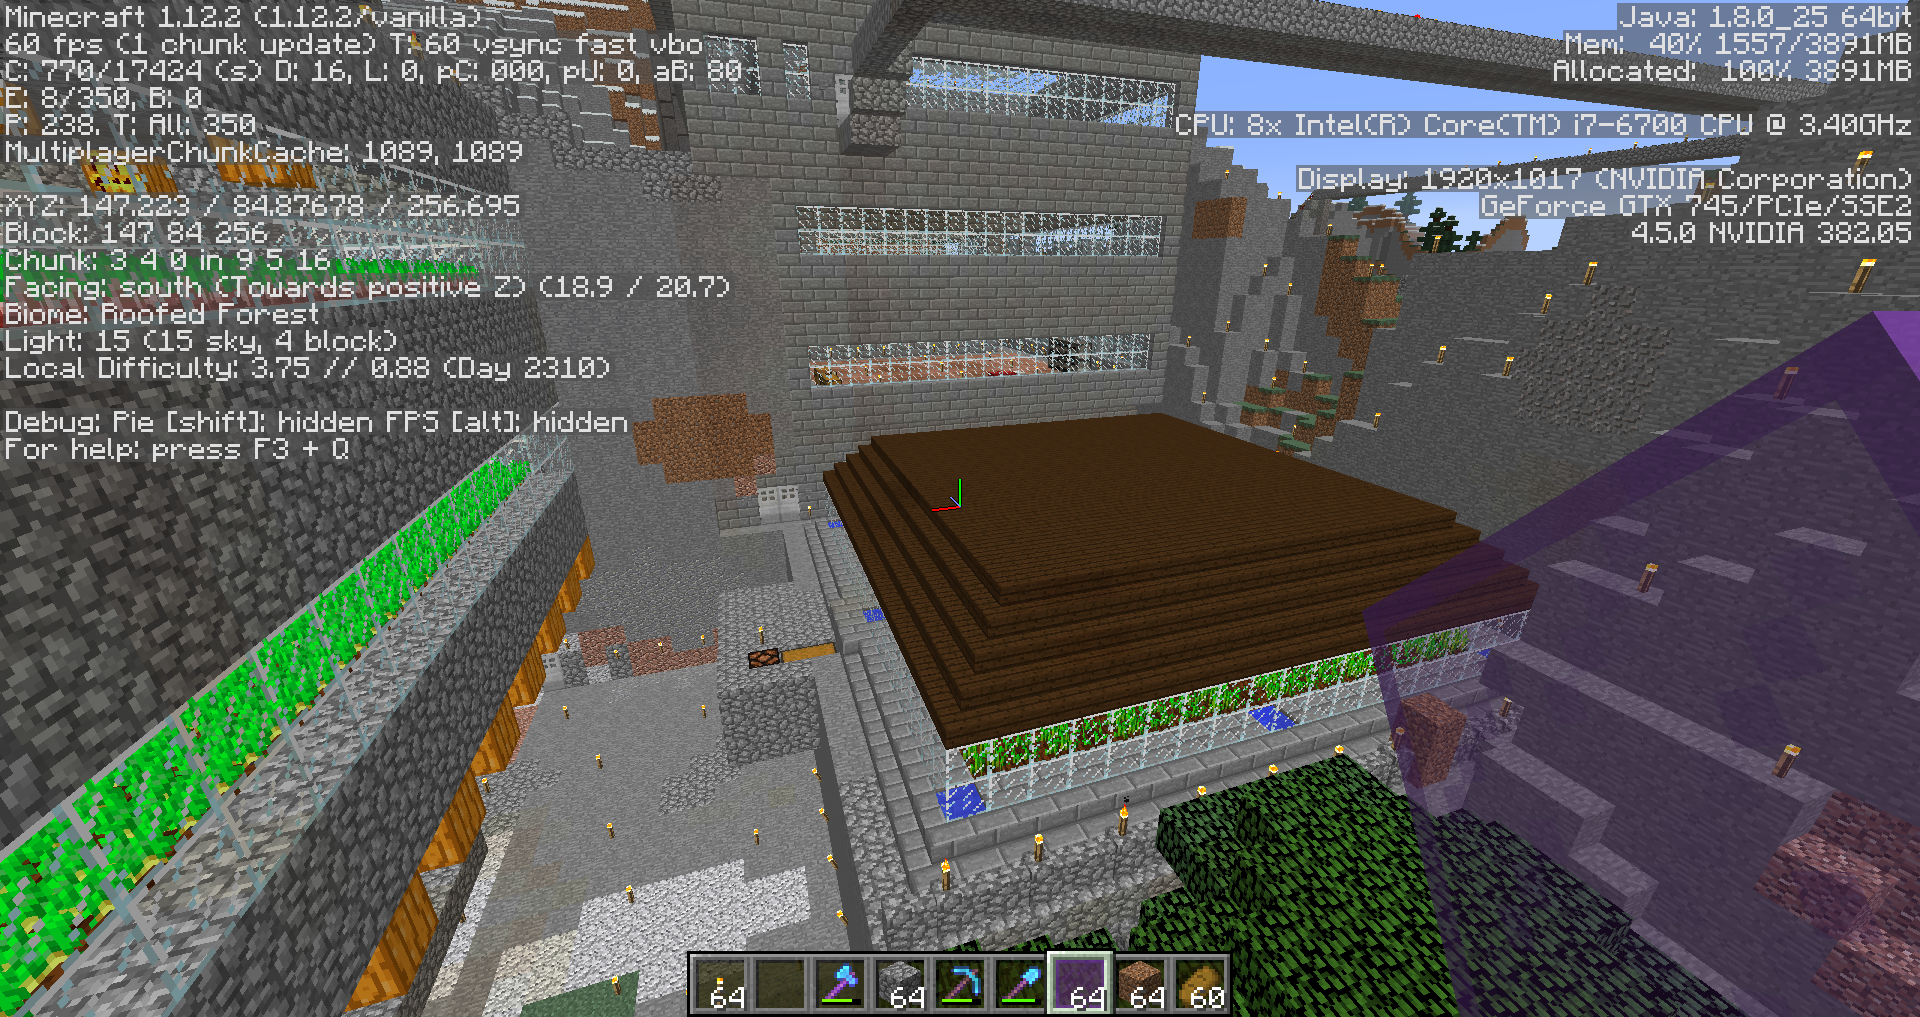 Minecraft Realms Server - Page 15 - Other Games - WePlayCiv Forums